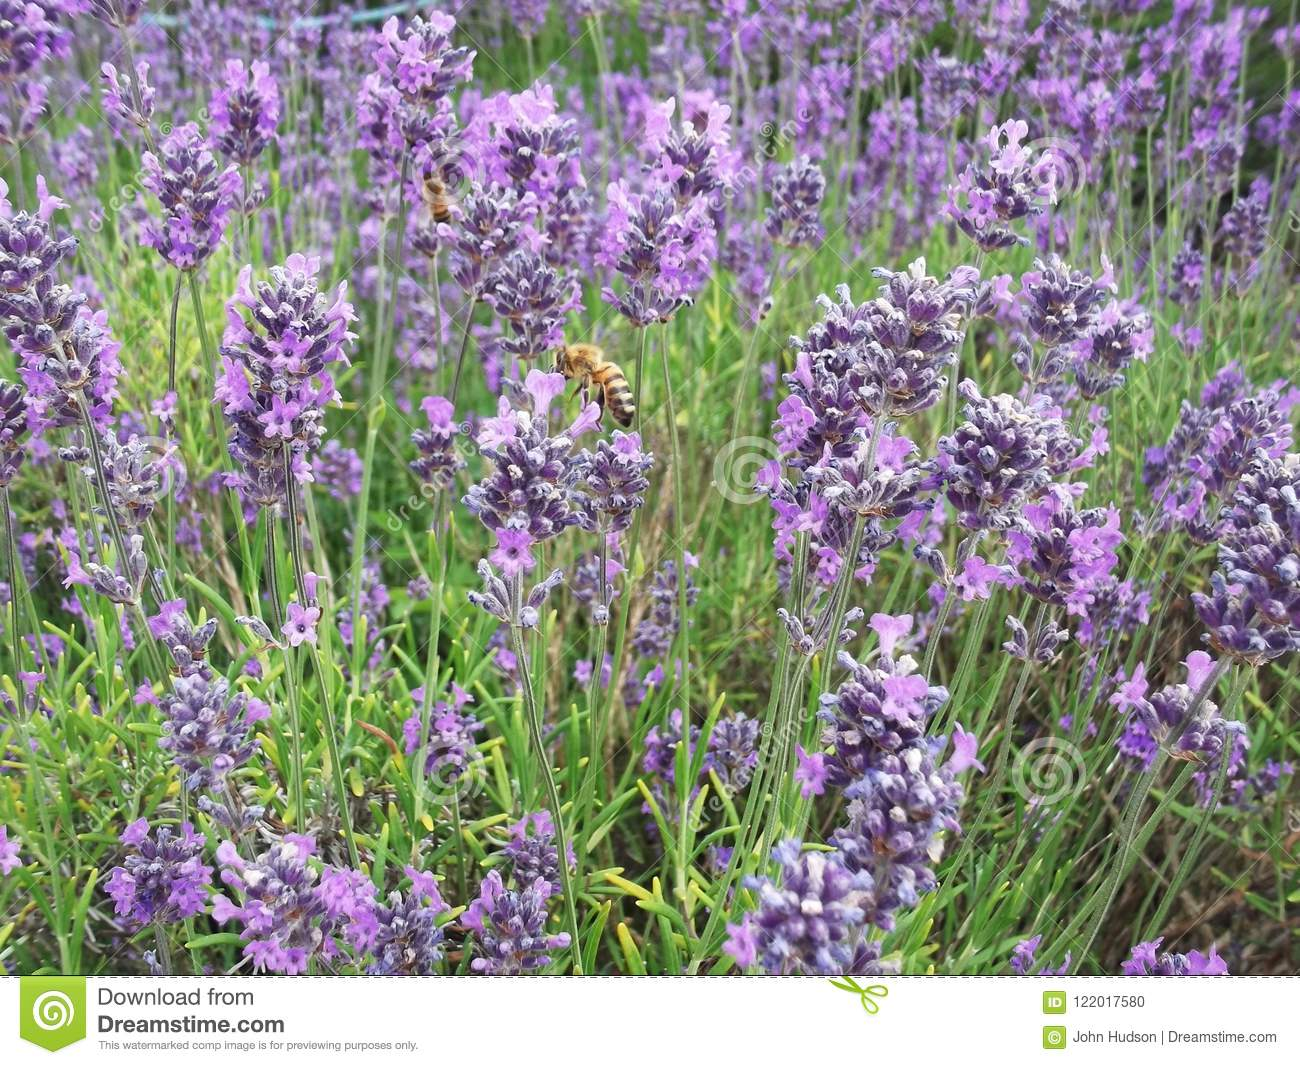 Lavender flowers with bees collecting nectar